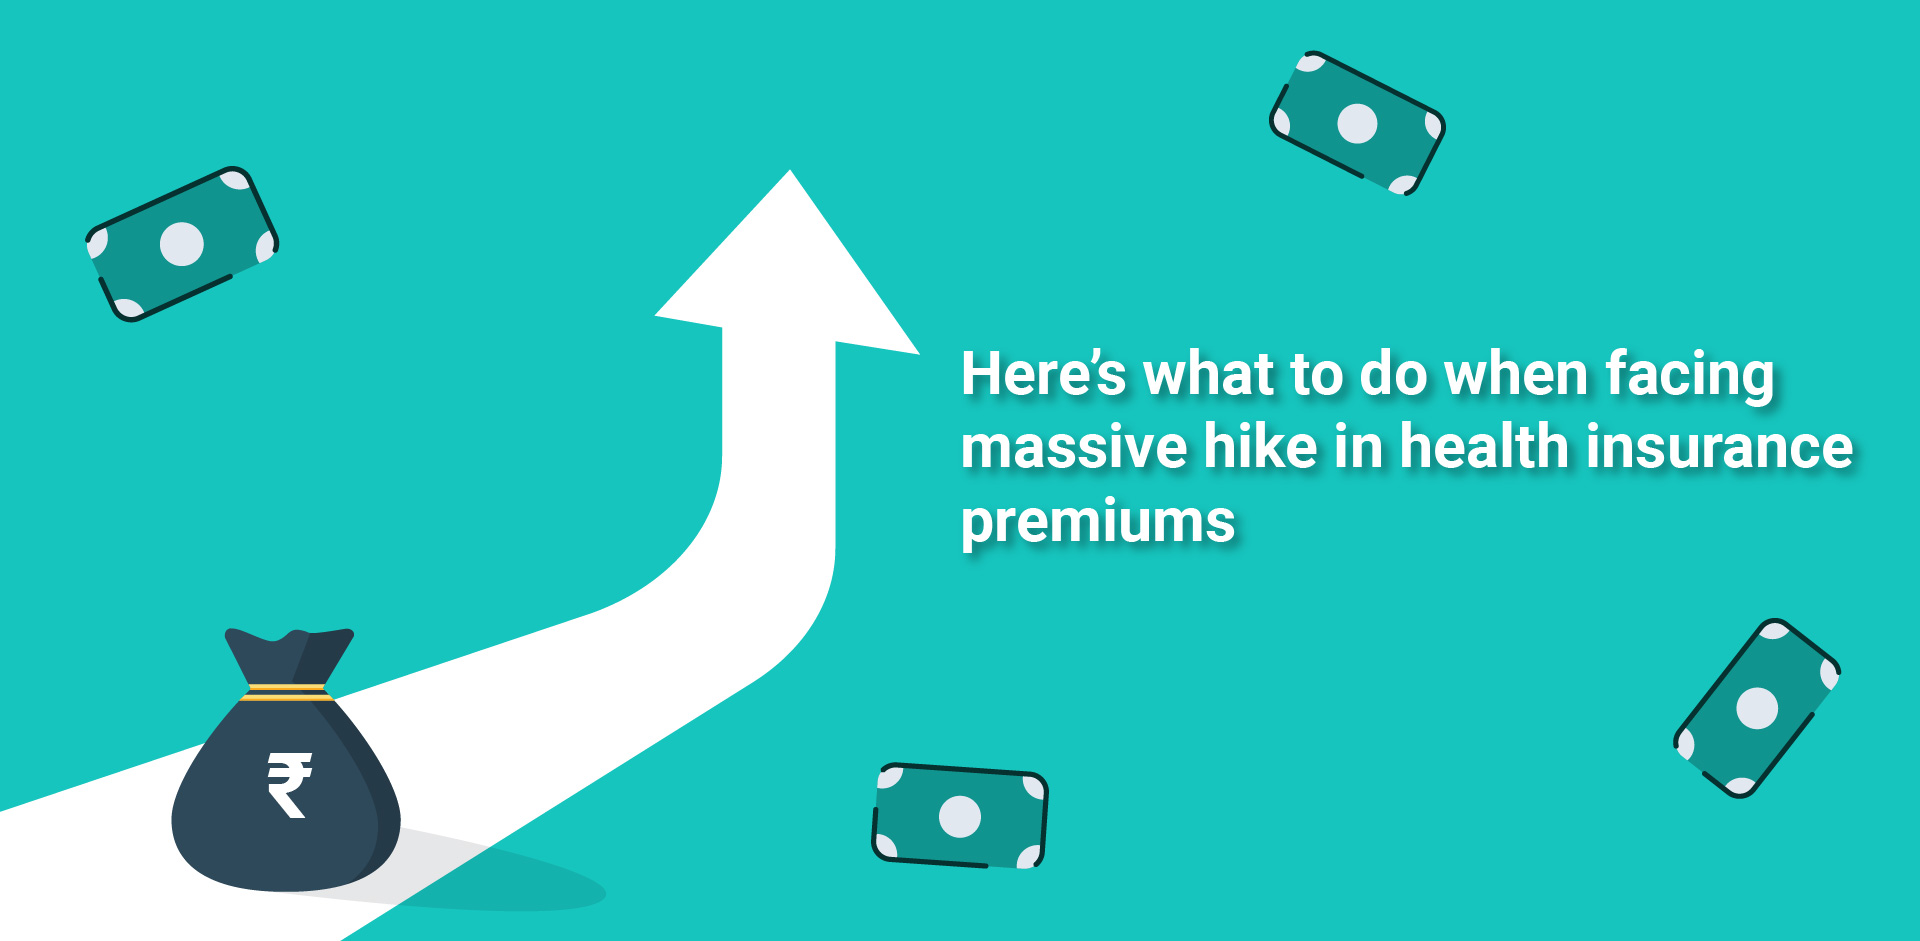 Here's what to do when facing massive hike in health insurance premiums